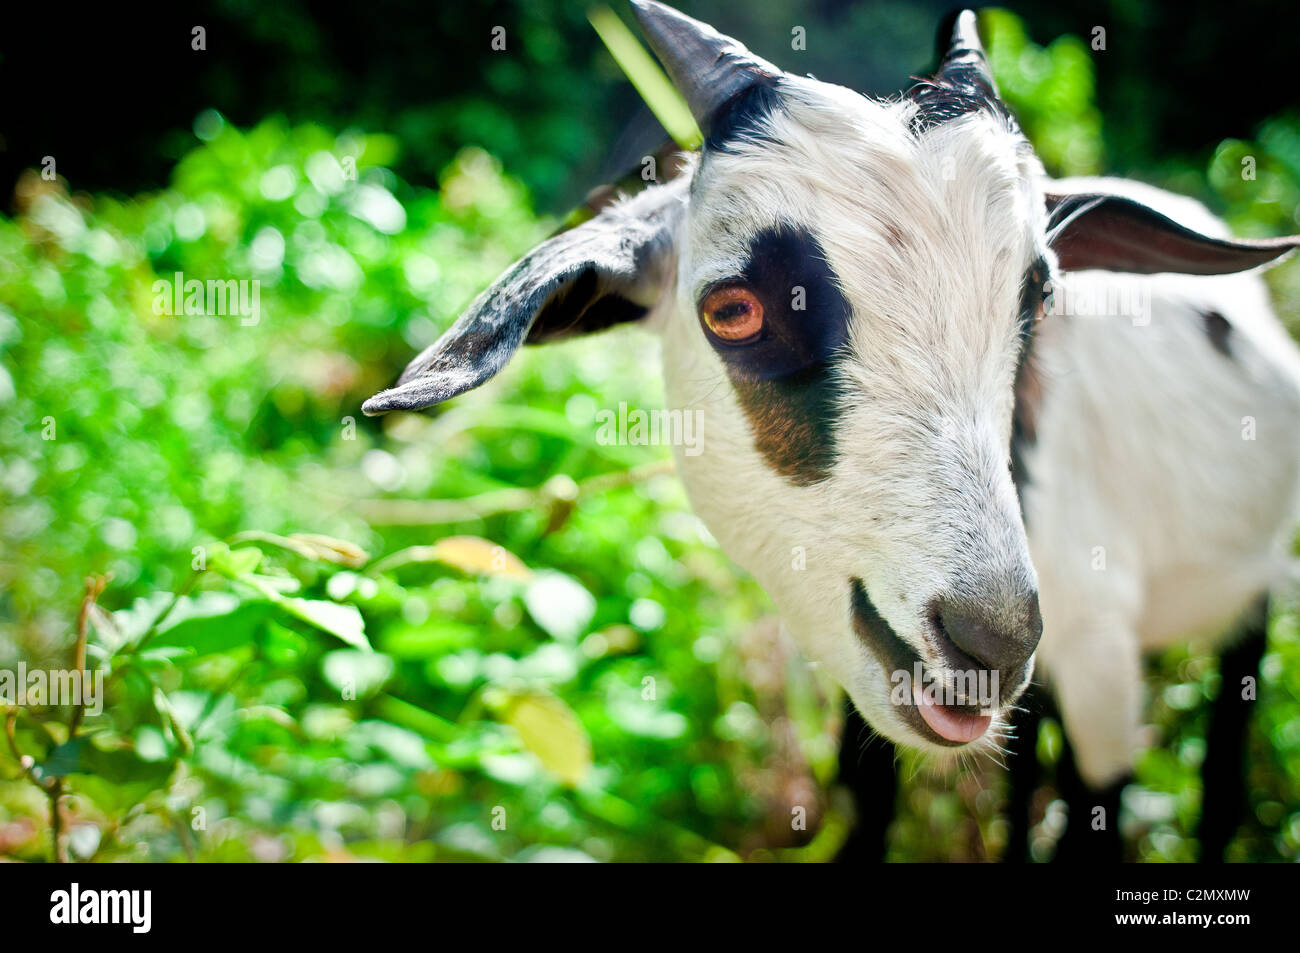 Baby kid goat tied up in the grass by the trail to graze.  He is staring right into the camera, with his tongue - Stock Image